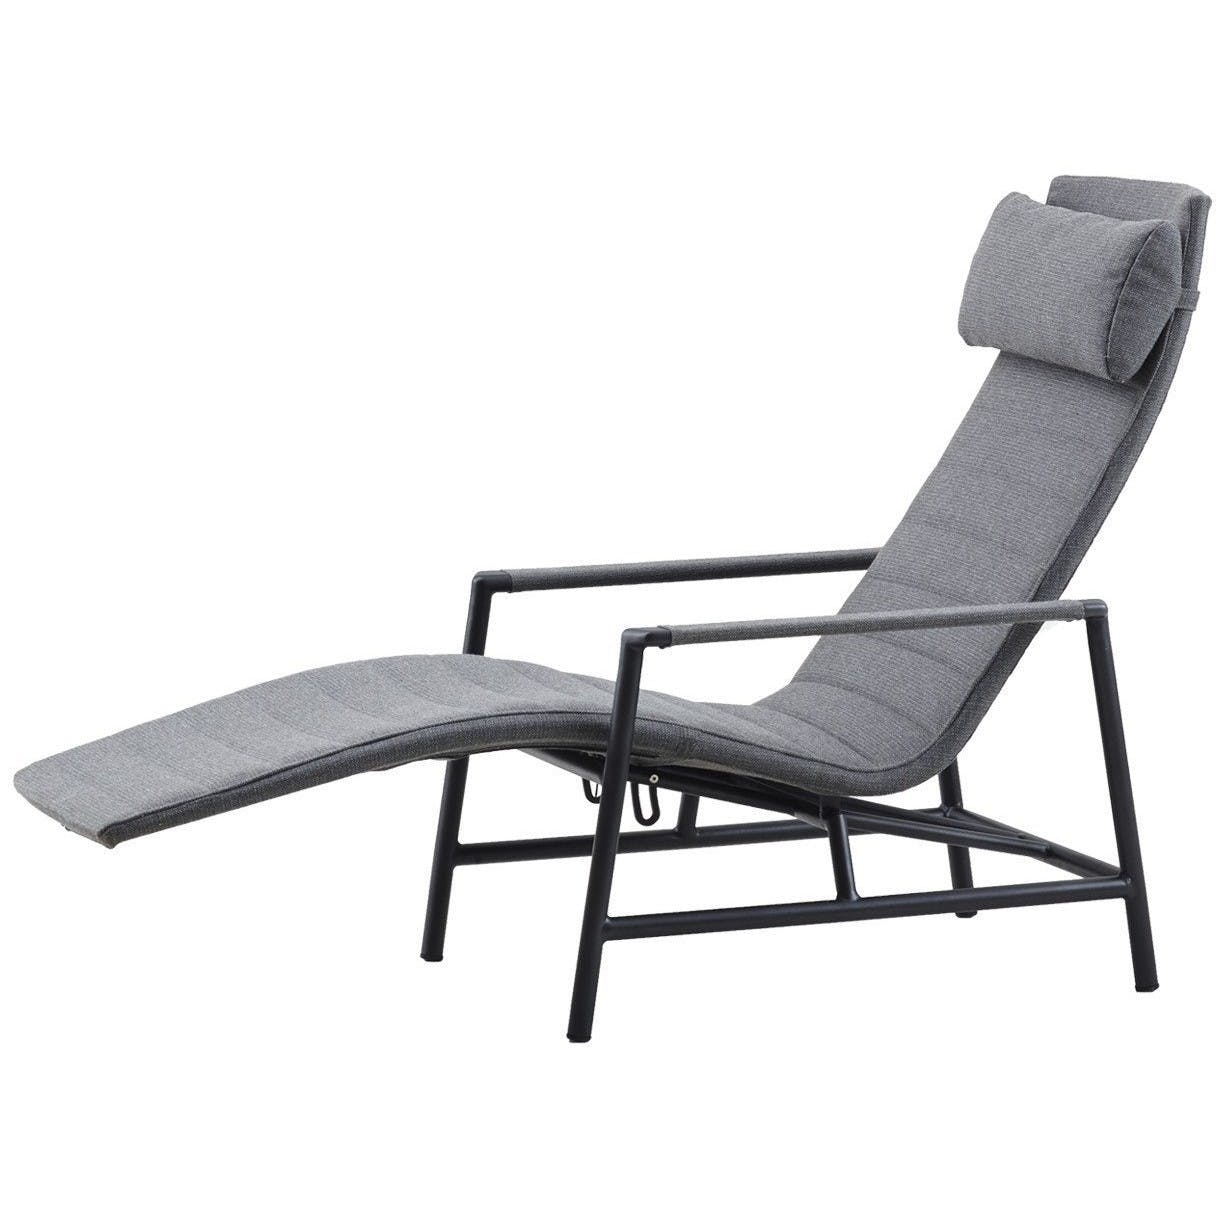 Cane-line-core-deck-chair-haute-living